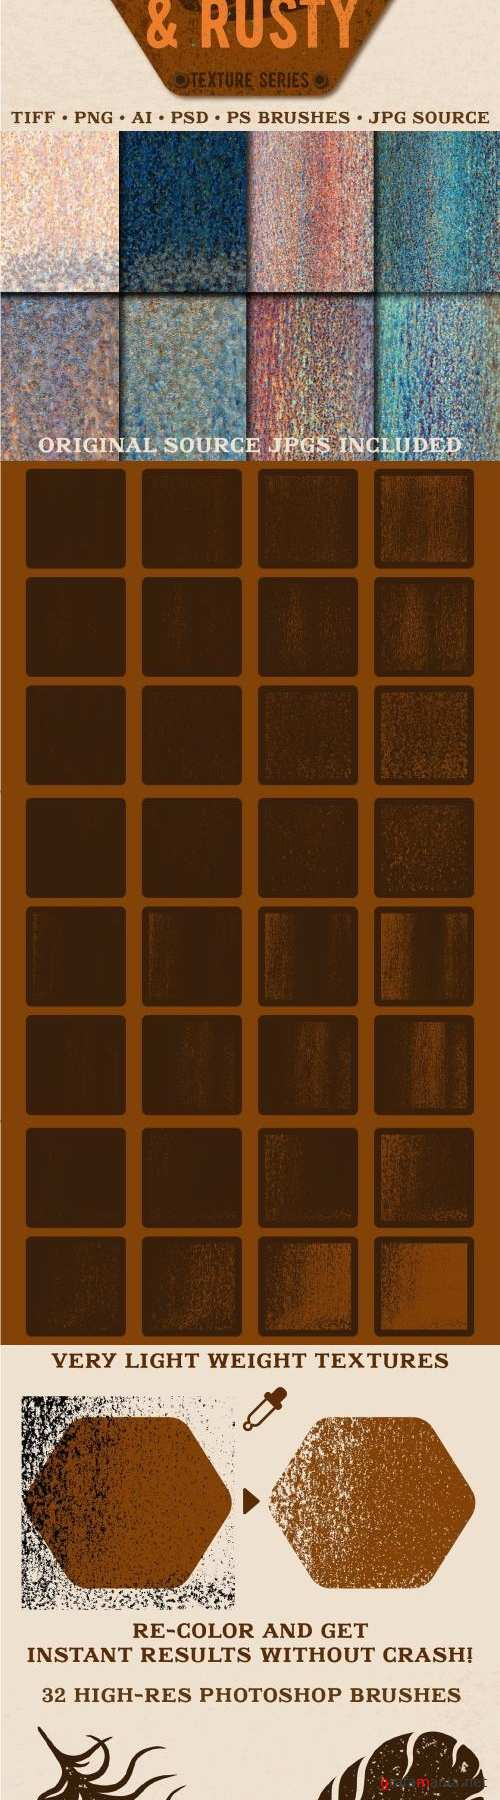 Light and Rusty Texture Pack - 2391269